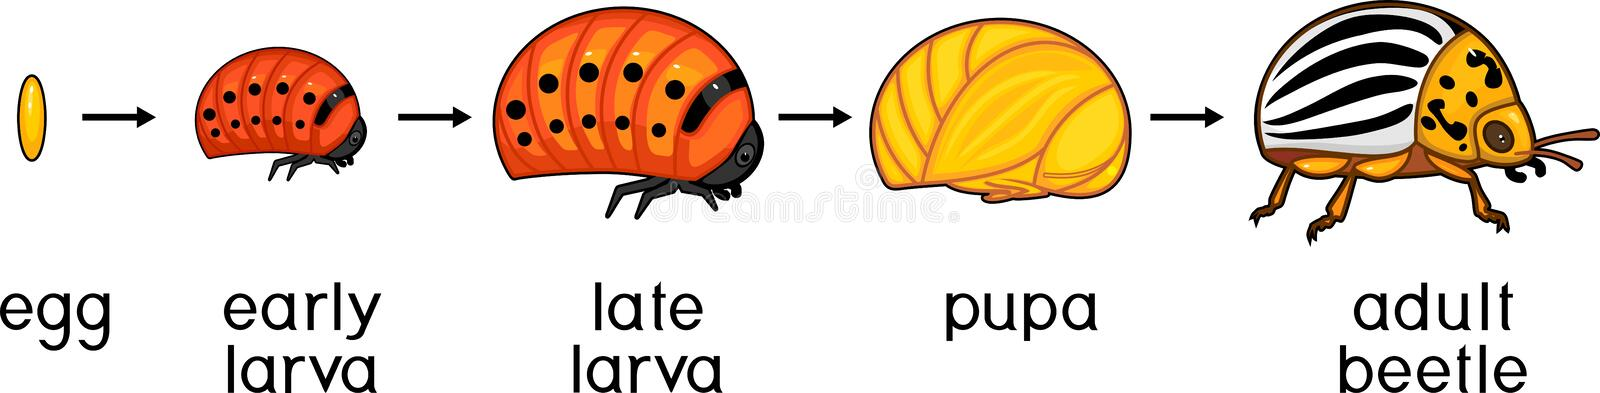 Life cycle of Colorado potato beetle or Leptinotarsa decemlineata. Stages of development from egg to adult insect vector illustration